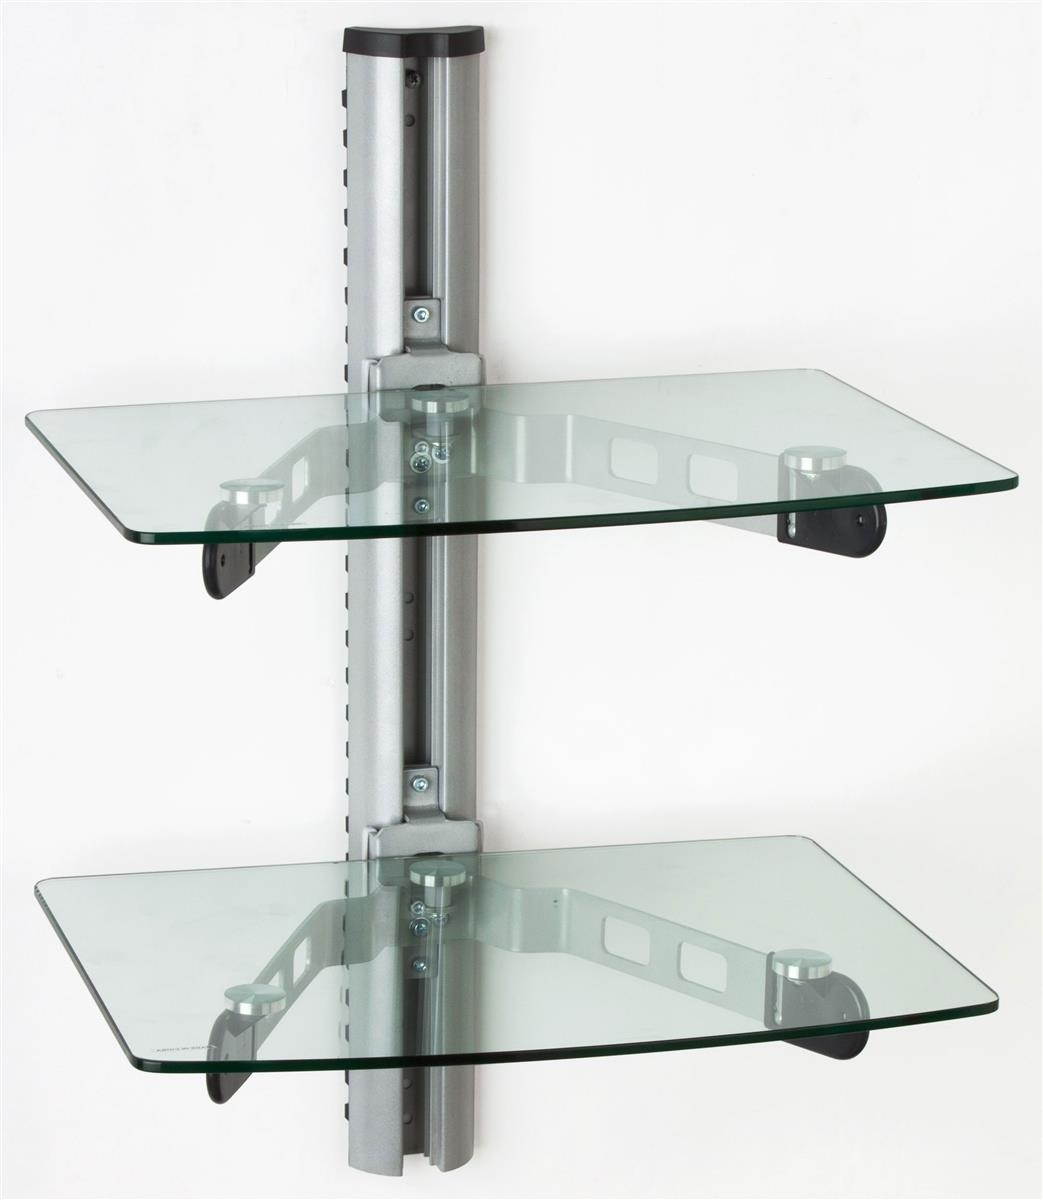 Wall Mounted Glass Shelves Av Component Stand Within Glass Wall Mount Shelves (View 10 of 15)